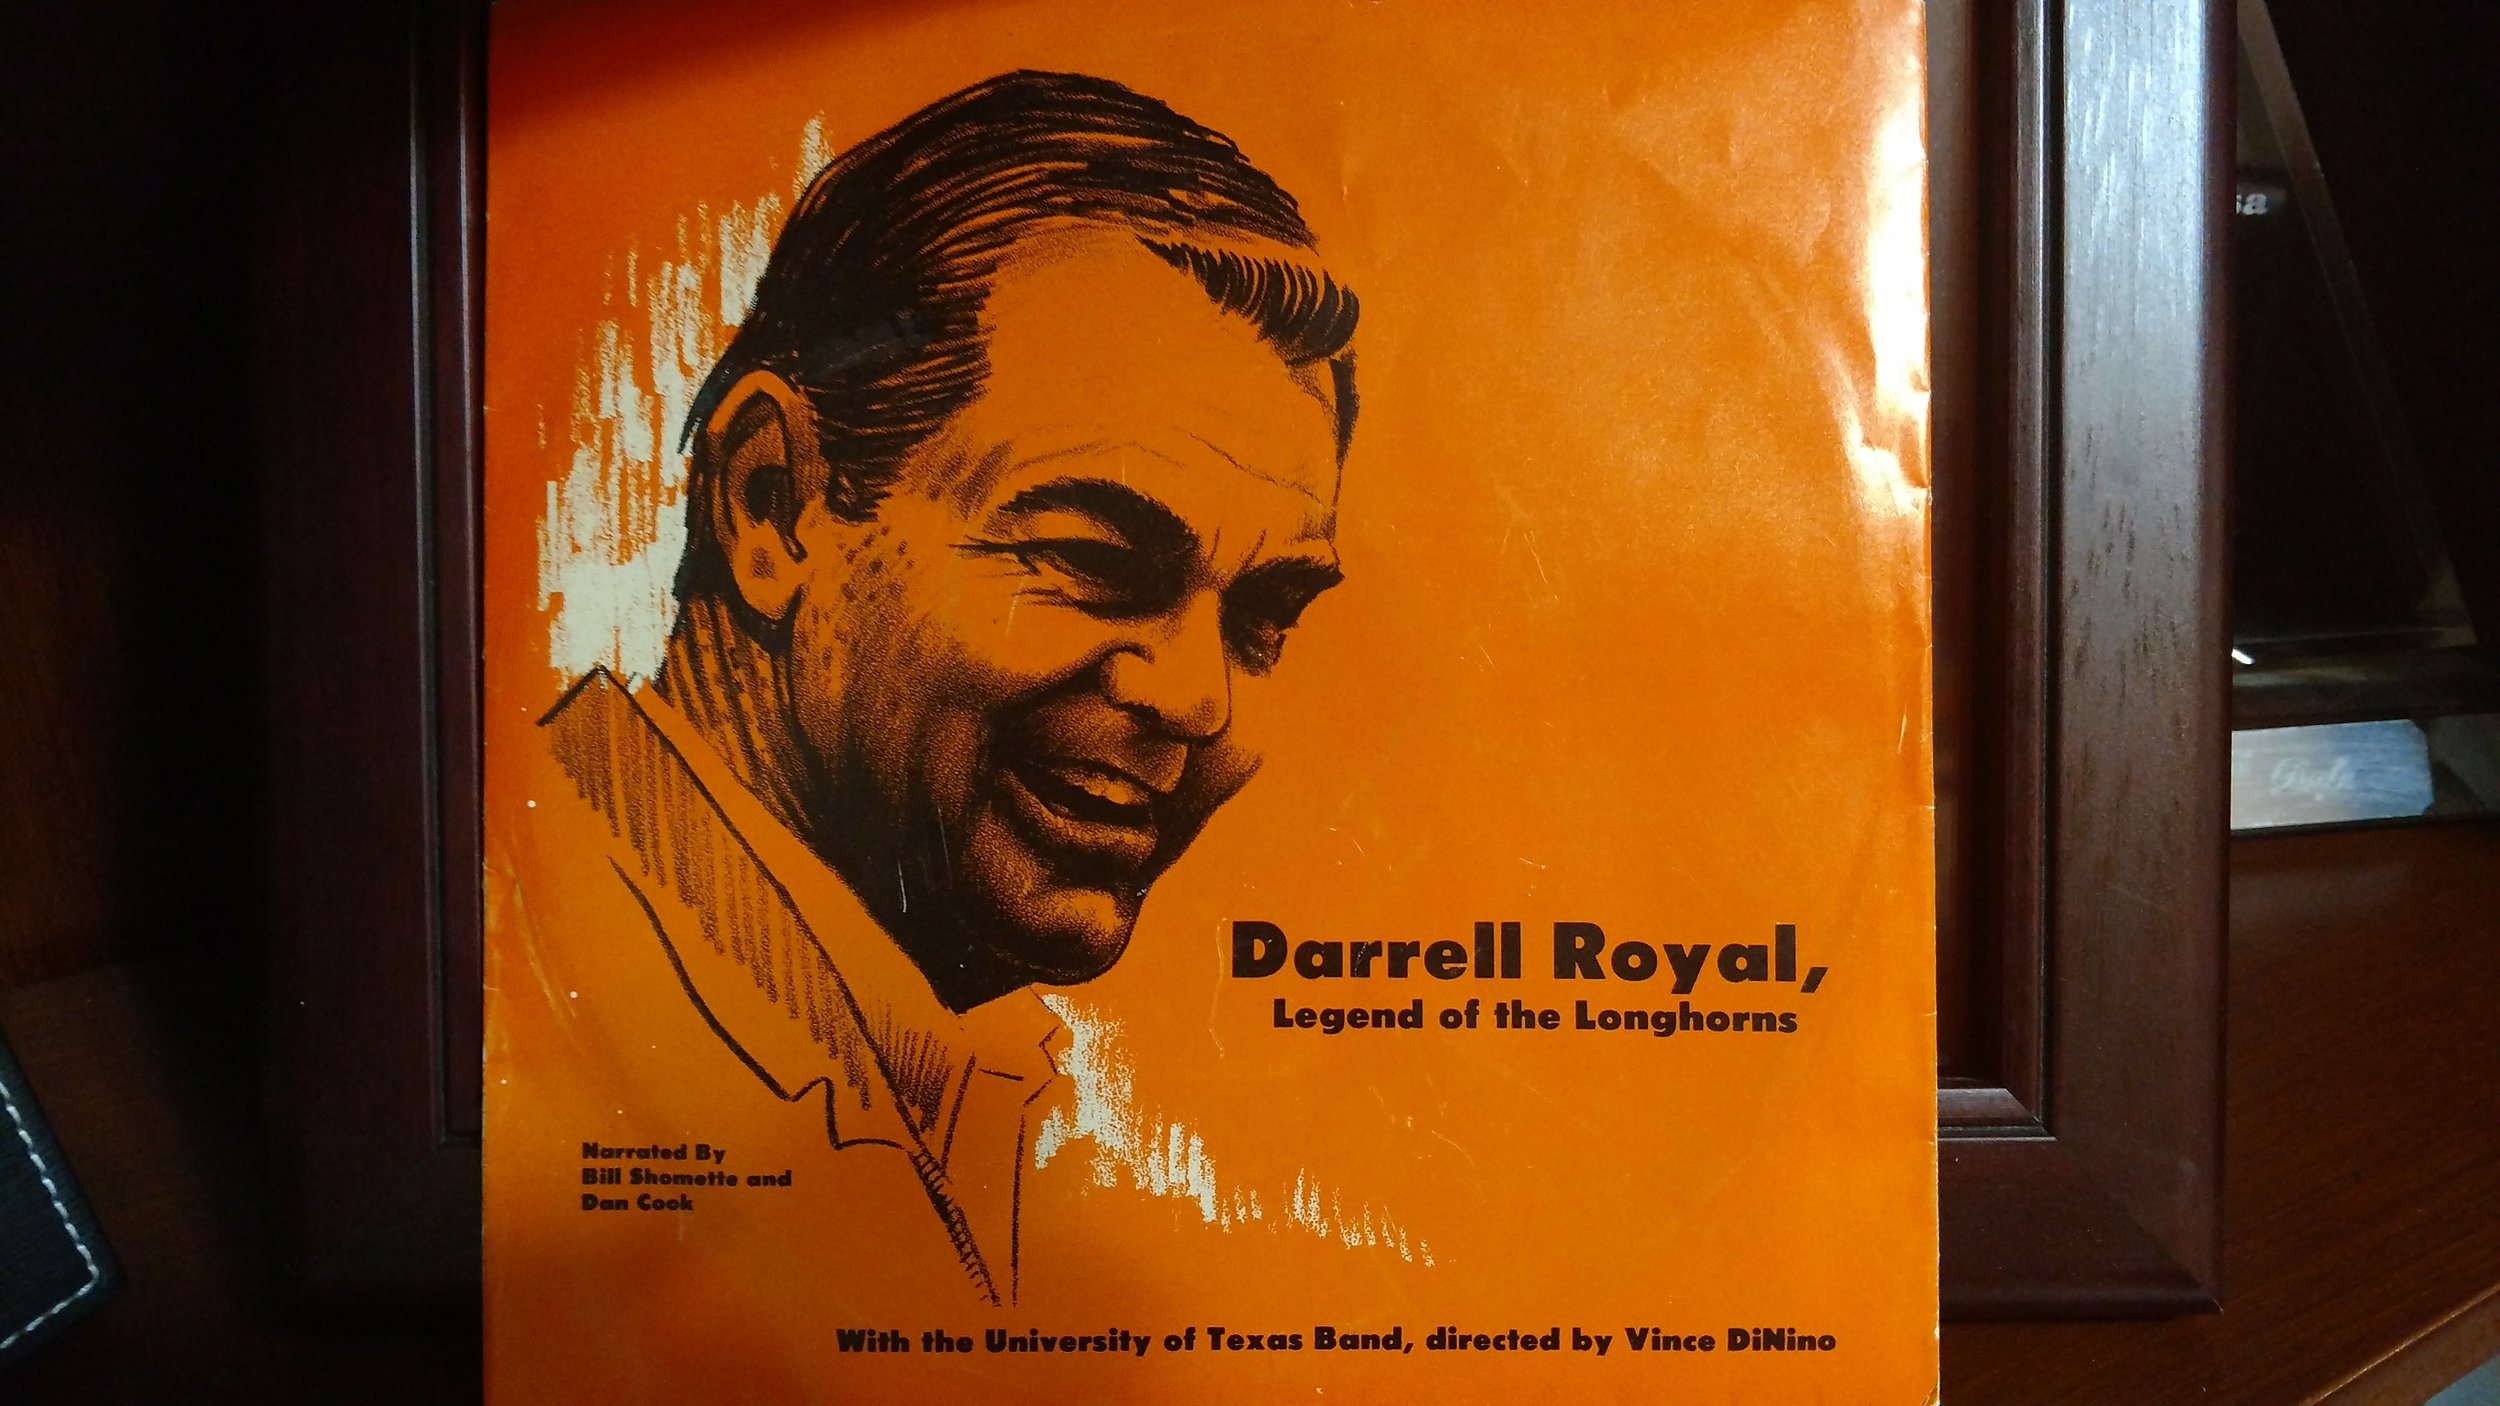 Cover to Royal 33 record